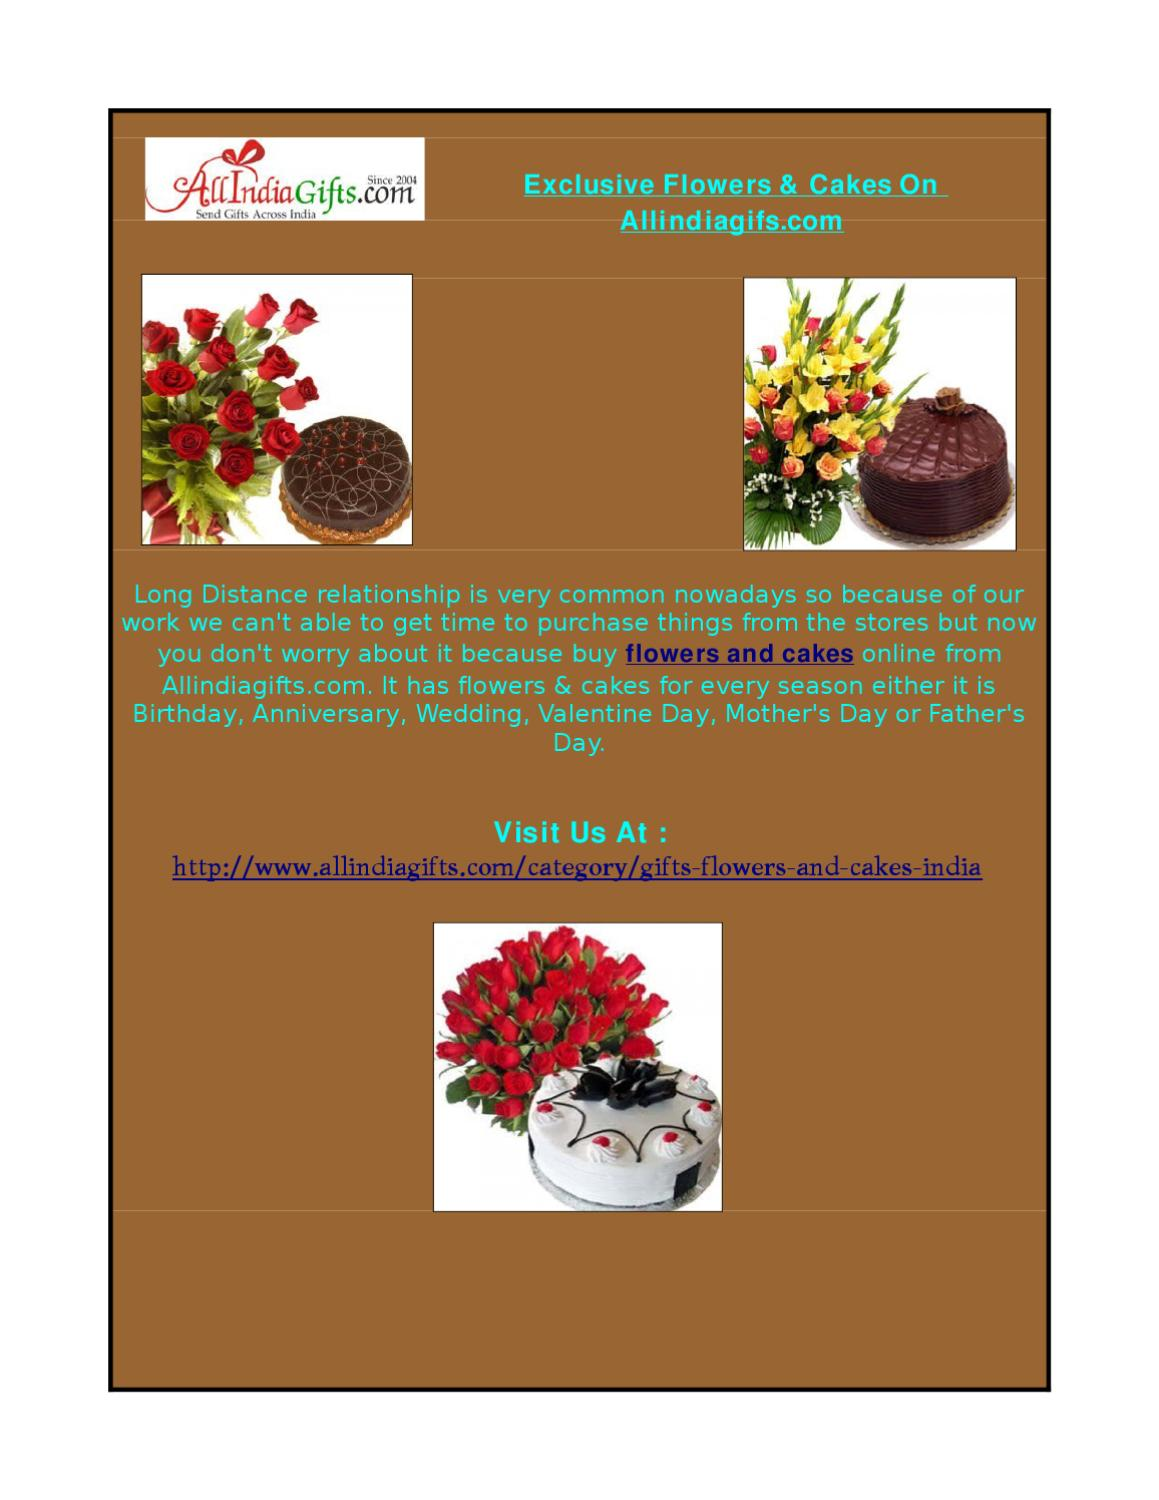 Send Flowers And Cakes Bouquet Of To India From Allindiagifts